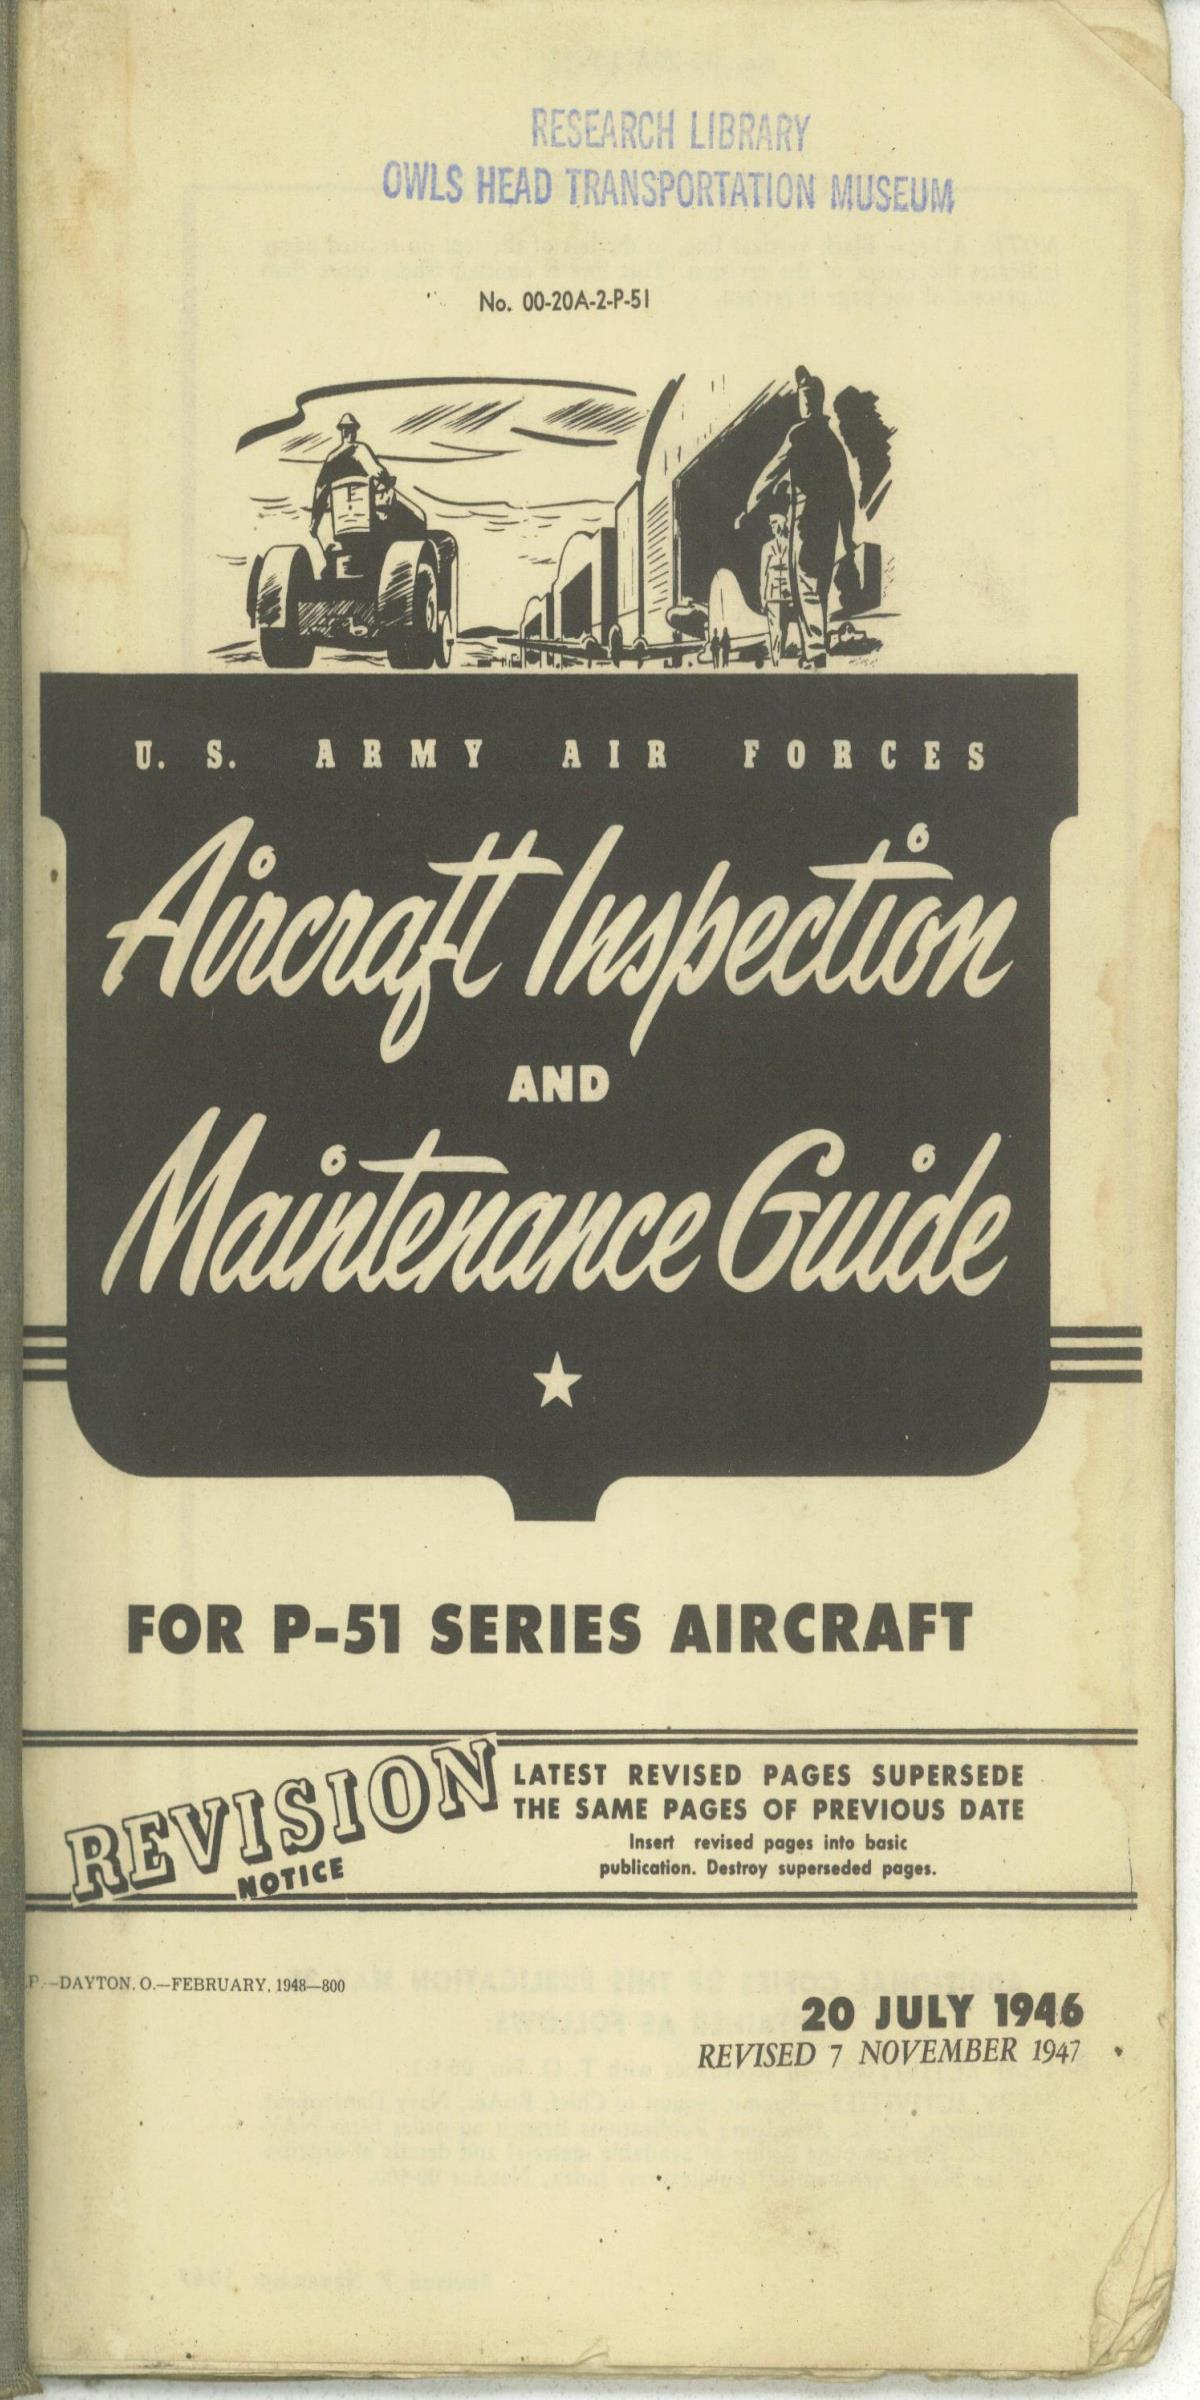 Sample page 1 from AirCorps Library document: Aircraft Inspection & Maintenance Guide - P-51